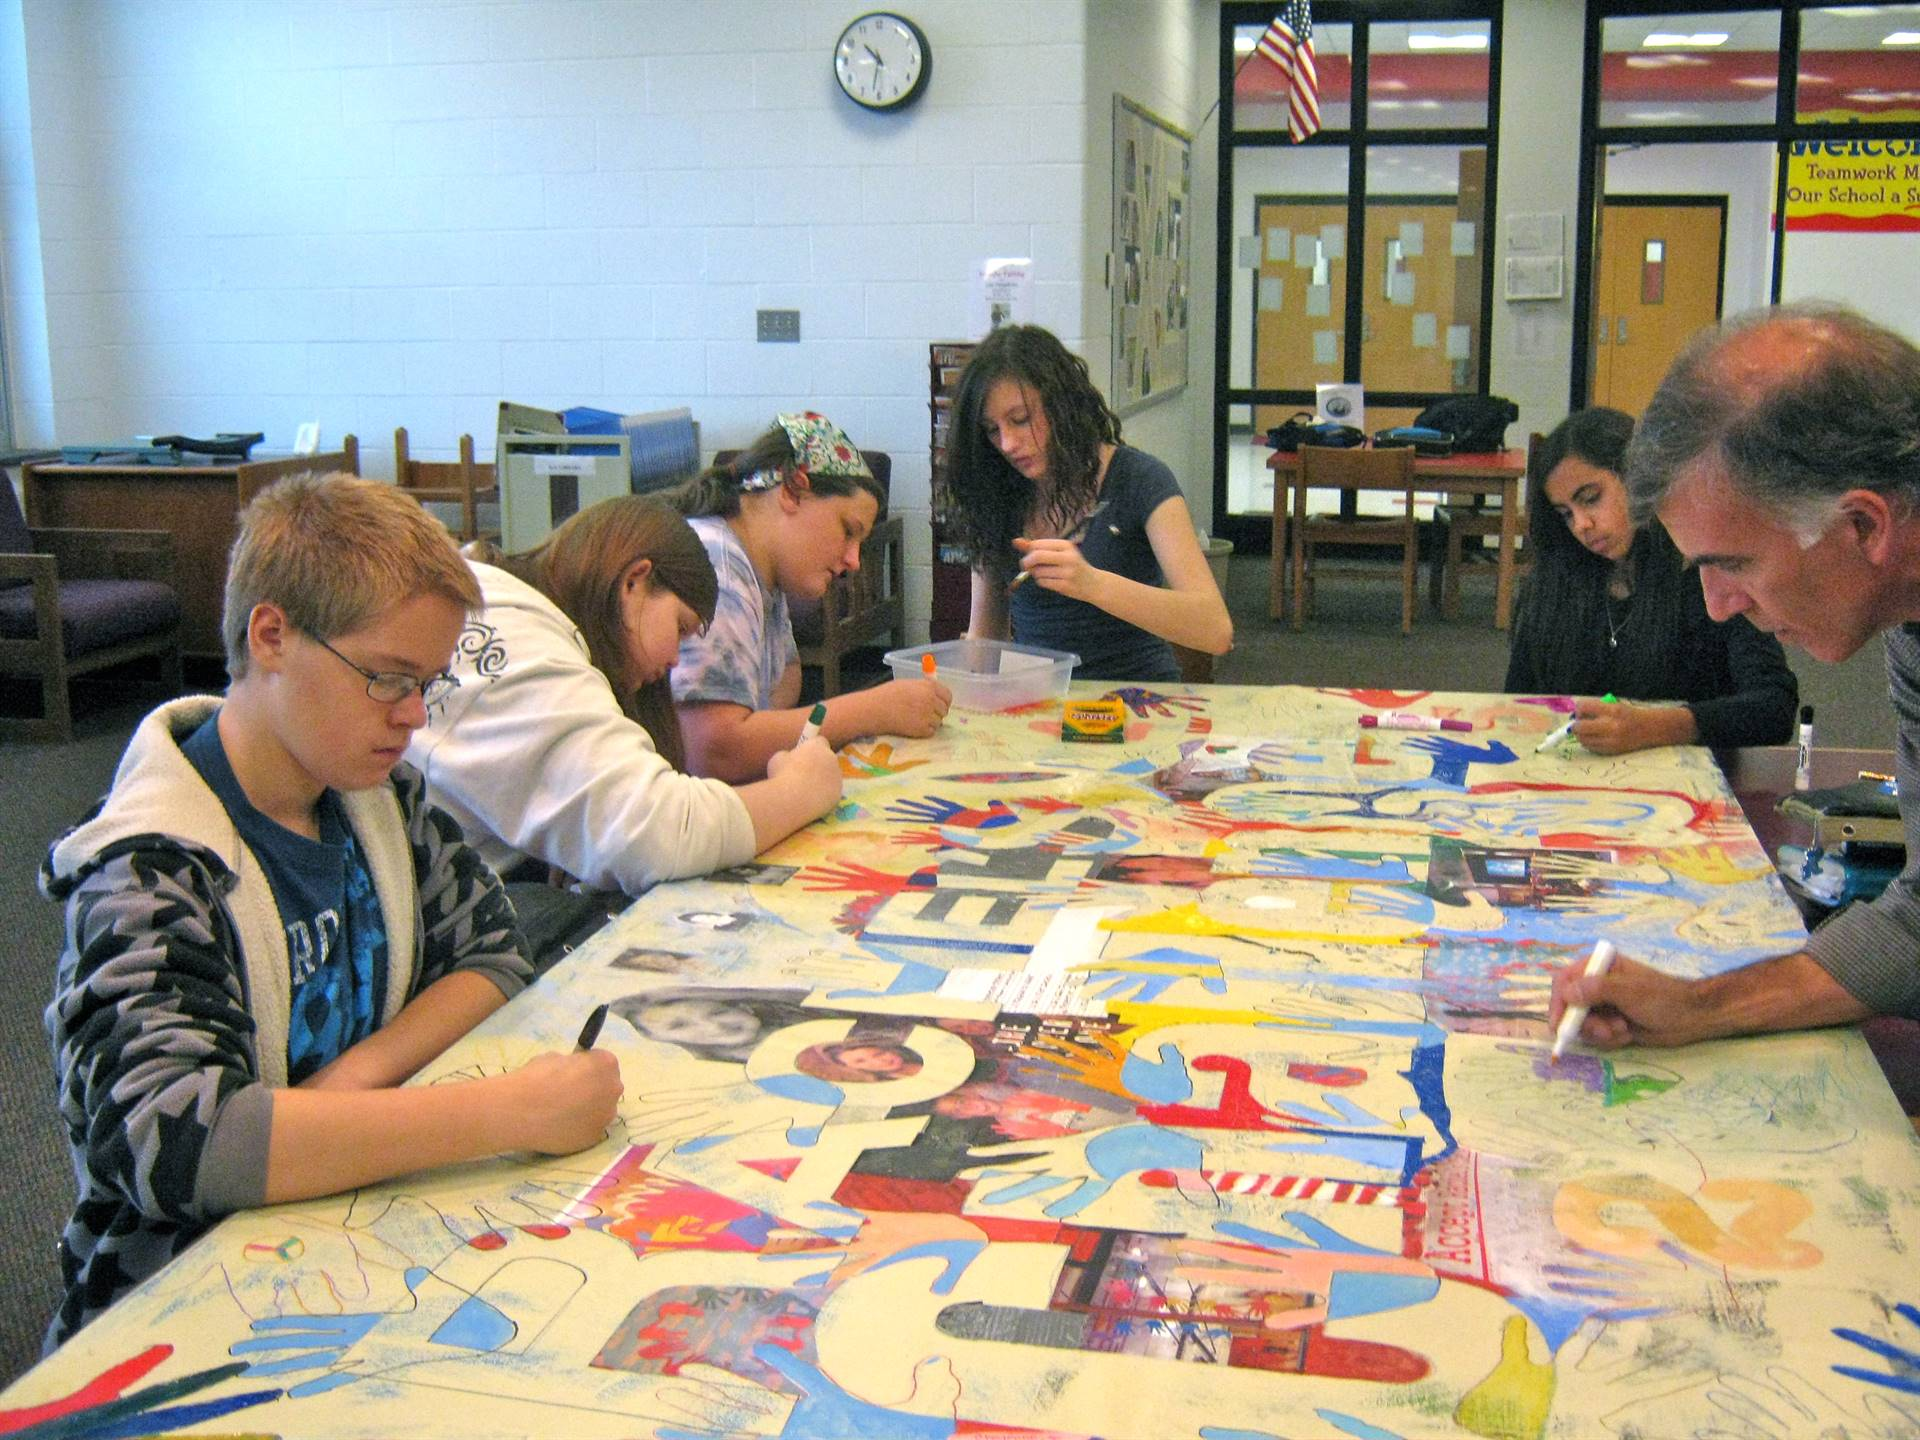 Library group creating Rachel's Challenge 4' x8' painting.